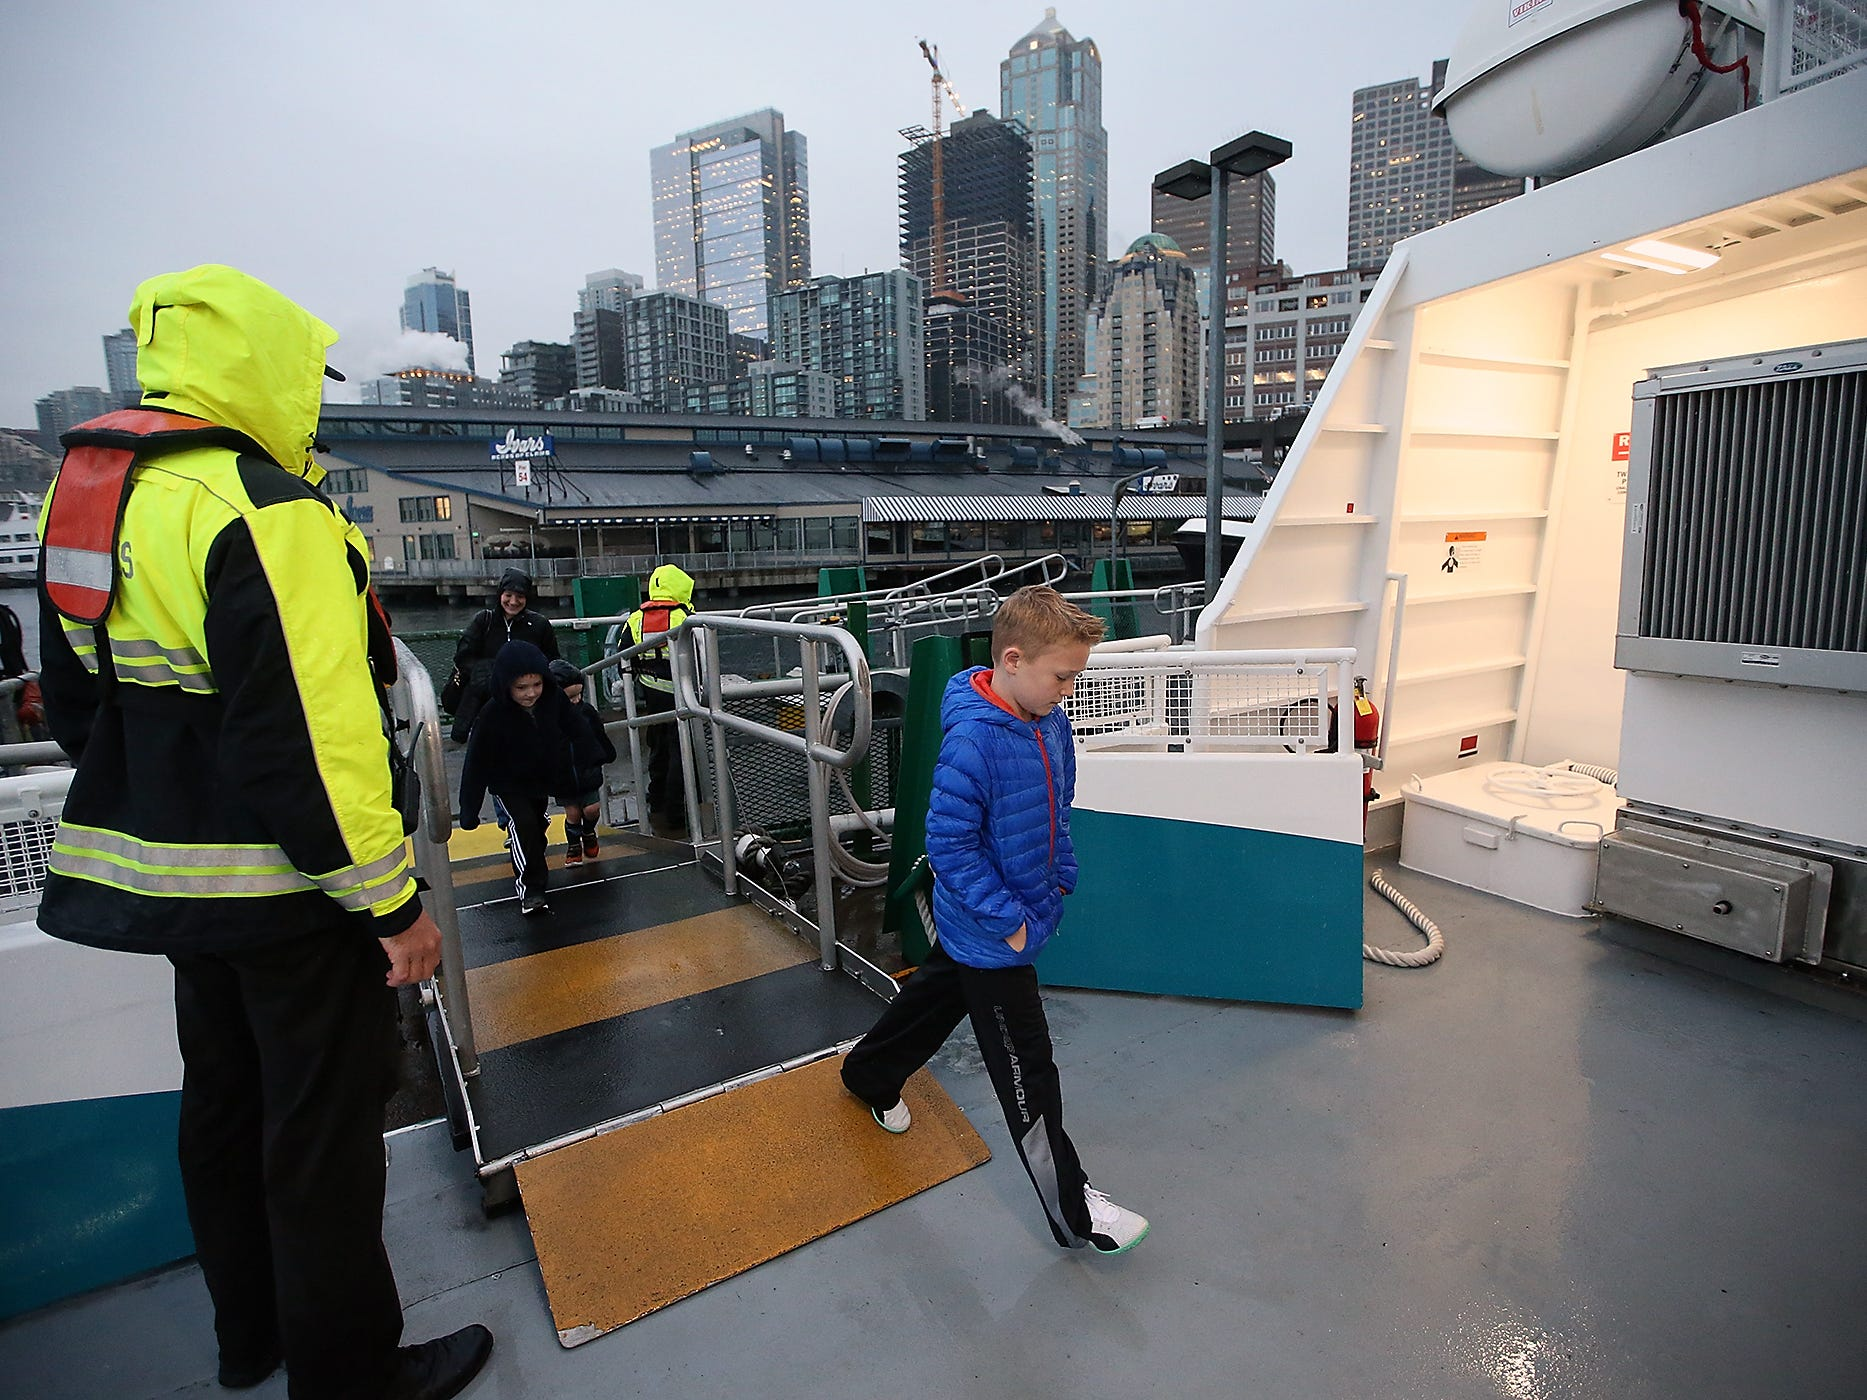 Patrick Sainsbury, 8, boards the M/V Finest at the dock in Seattle as he and his family head to Kingston to visit his grandparents on Monday, November 26, 2018.